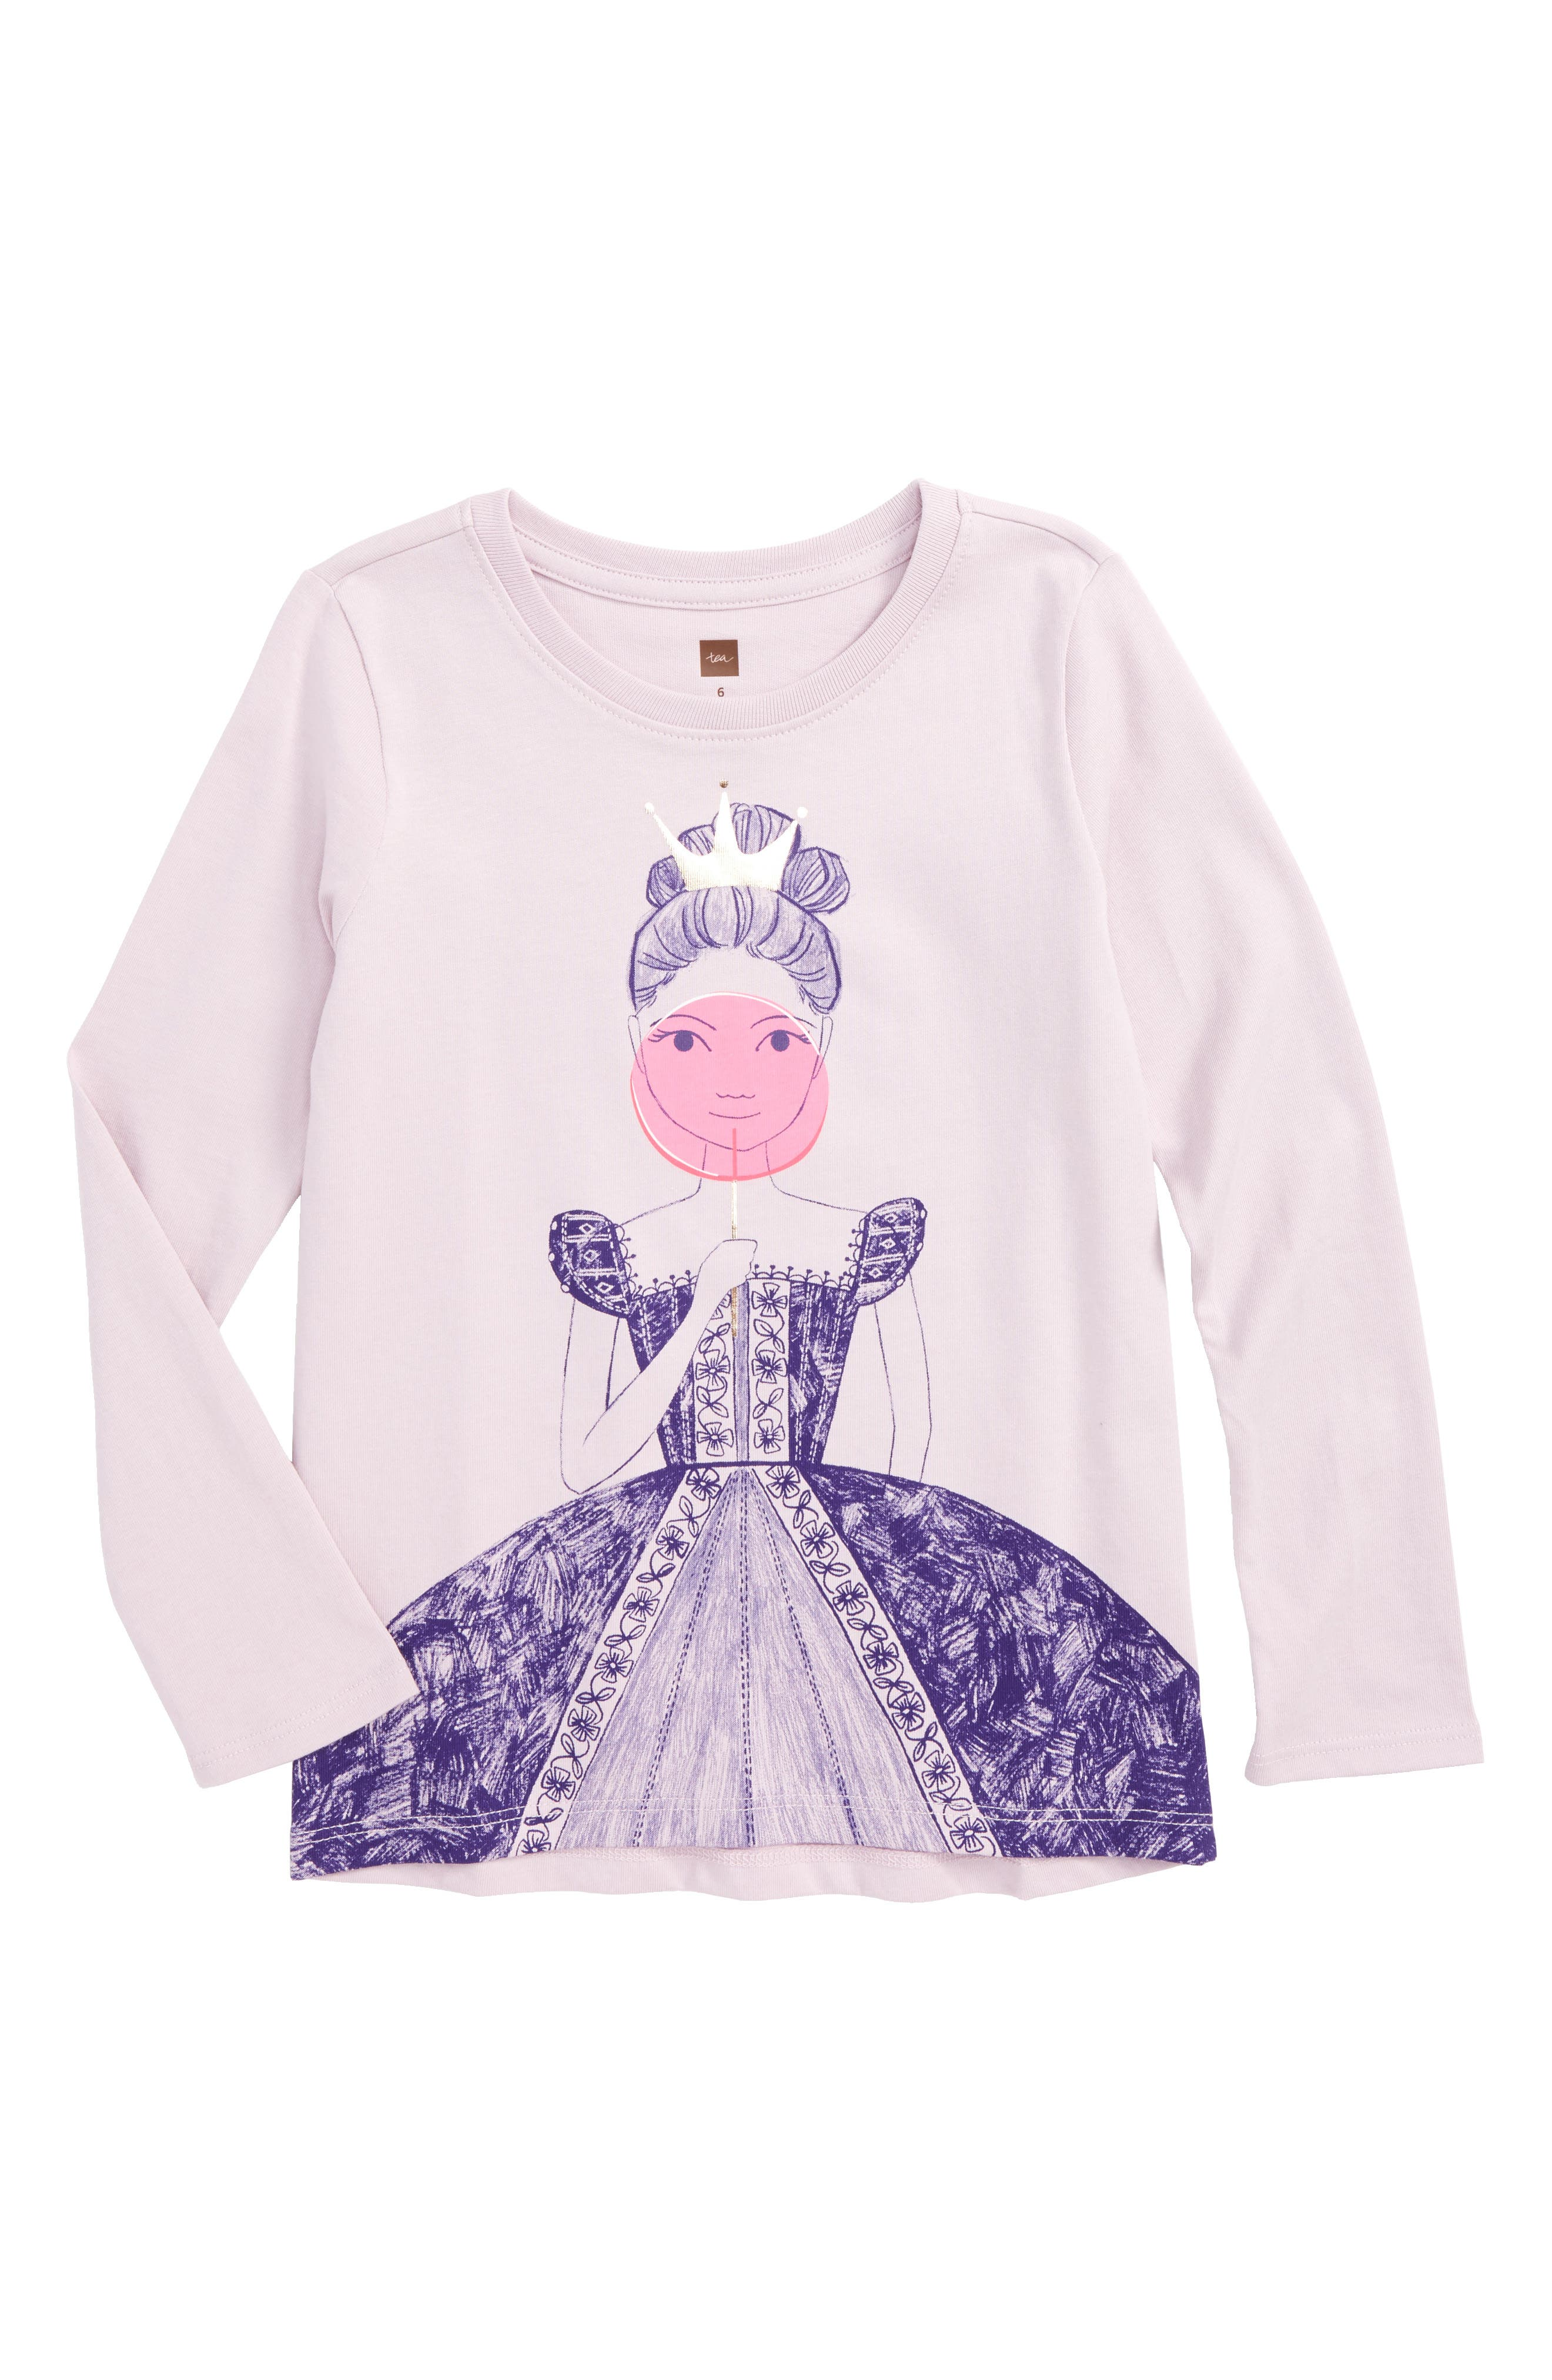 Main Image - Tea Collection Queen of Scots Graphic Tee (Toddler Girls, Little Girls & Big Girls)